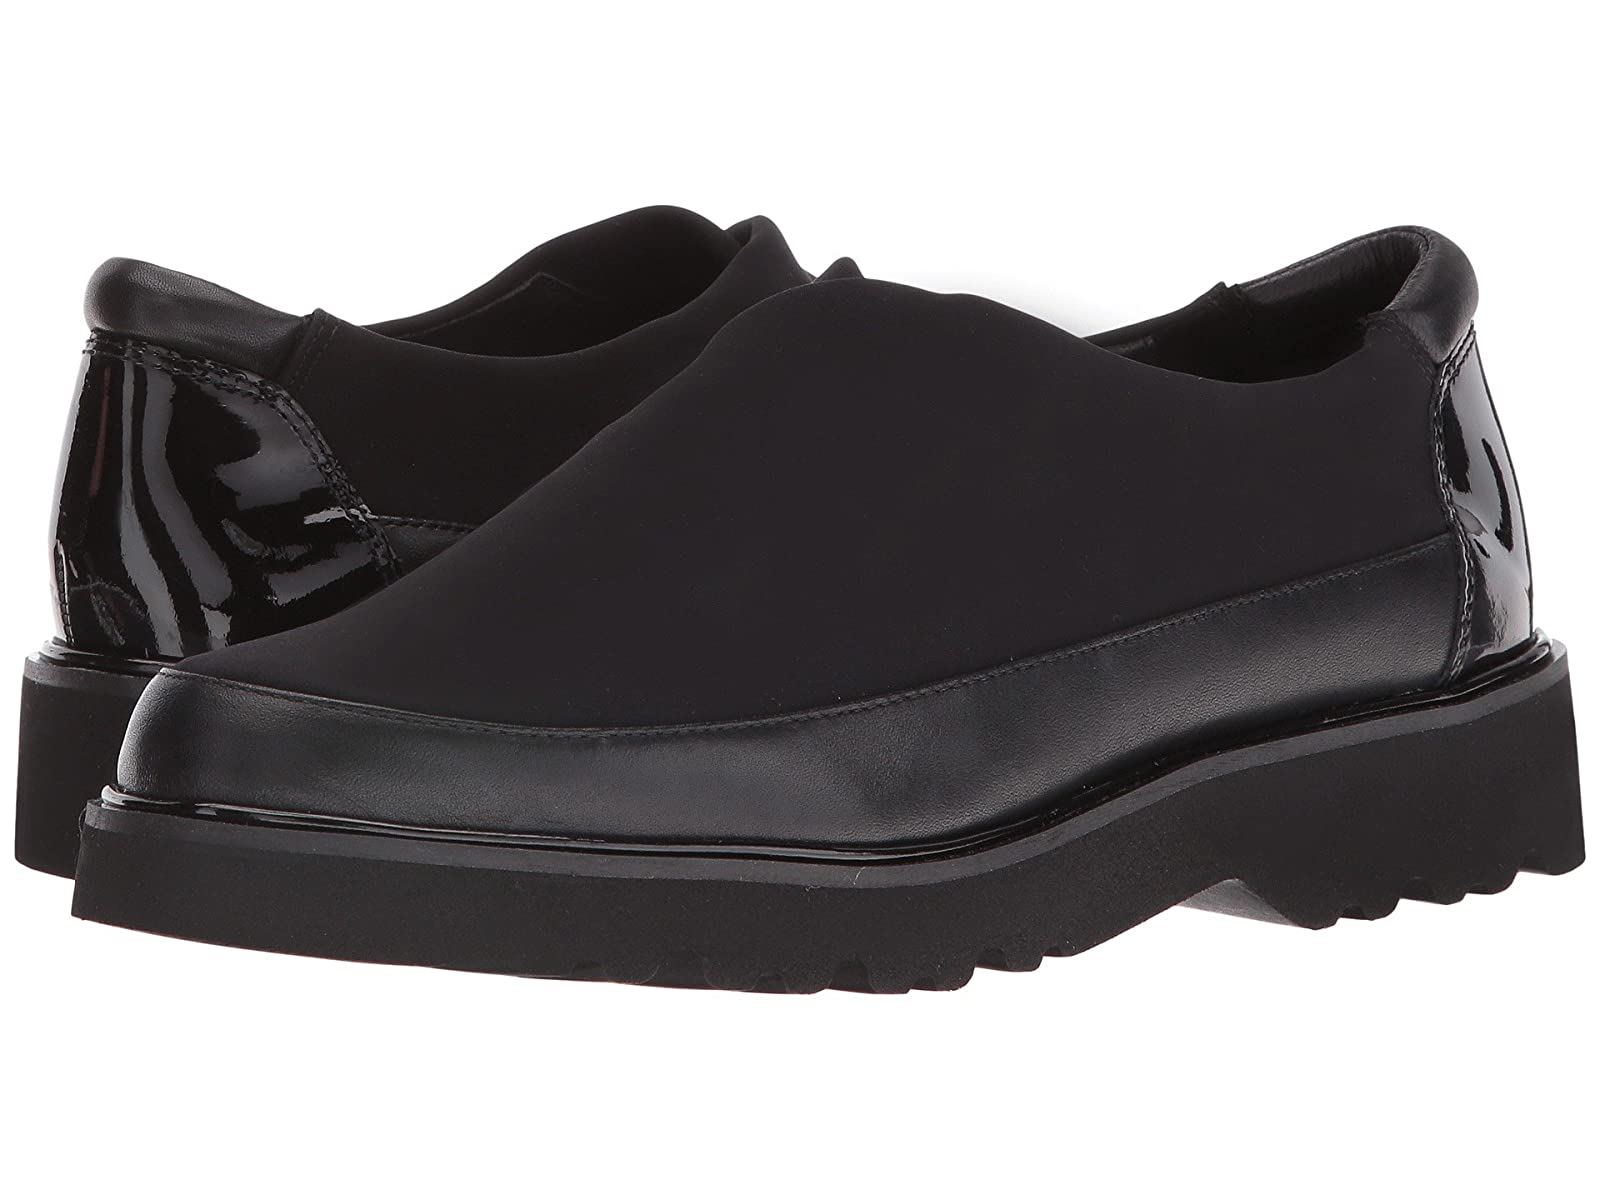 Donald J Pliner CarlyCheap and distinctive eye-catching shoes